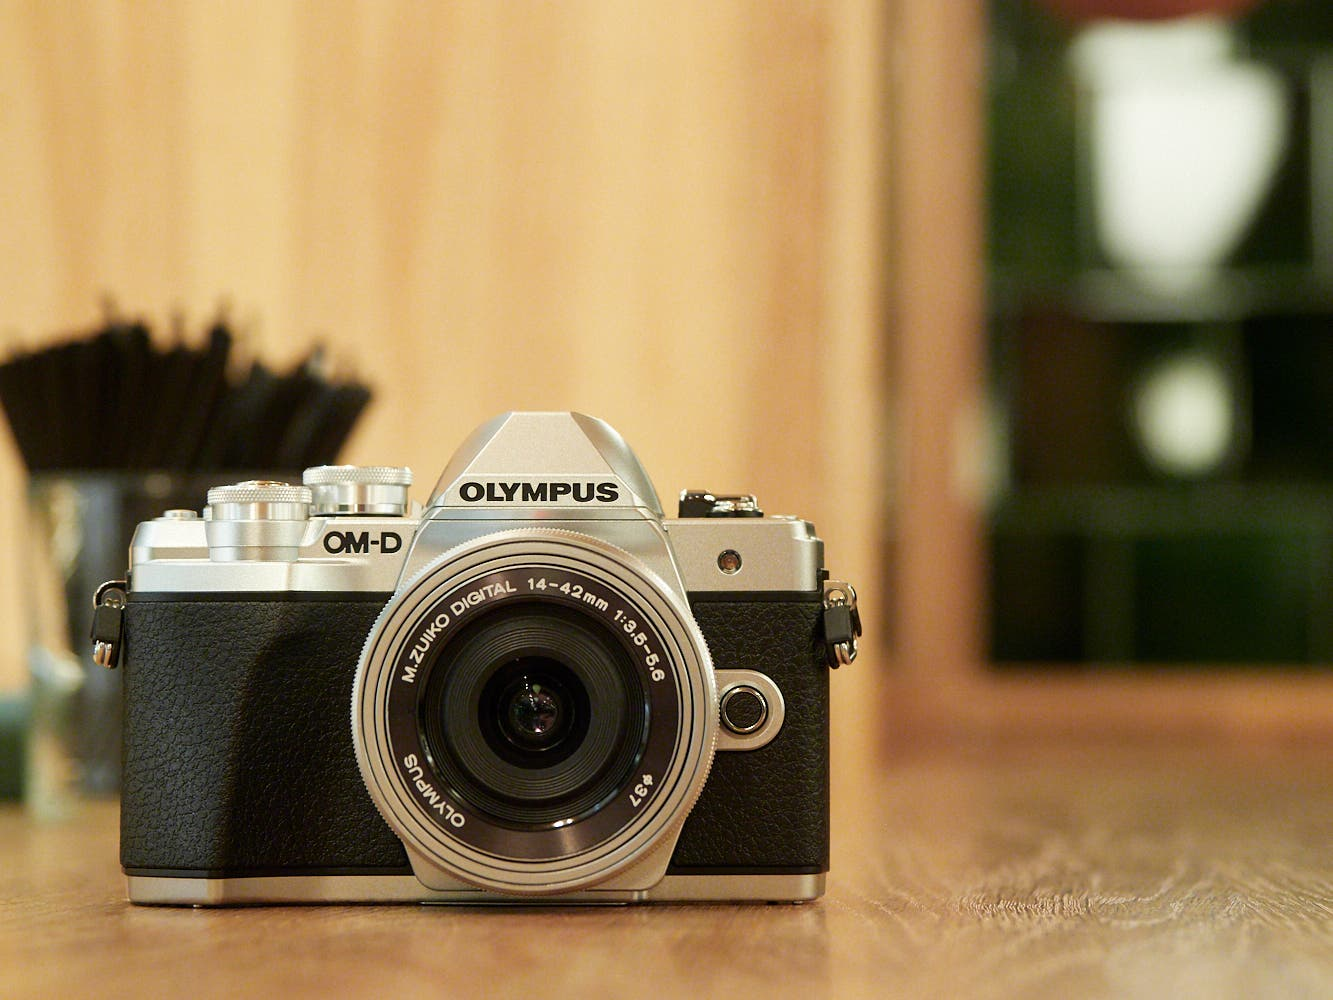 What Configuration Did You Get The M10a In Mk T Olympus Om D E M10 Mark Iii Kit 14 42 Ez Mzuiko 45mm F 18 Silver Ii